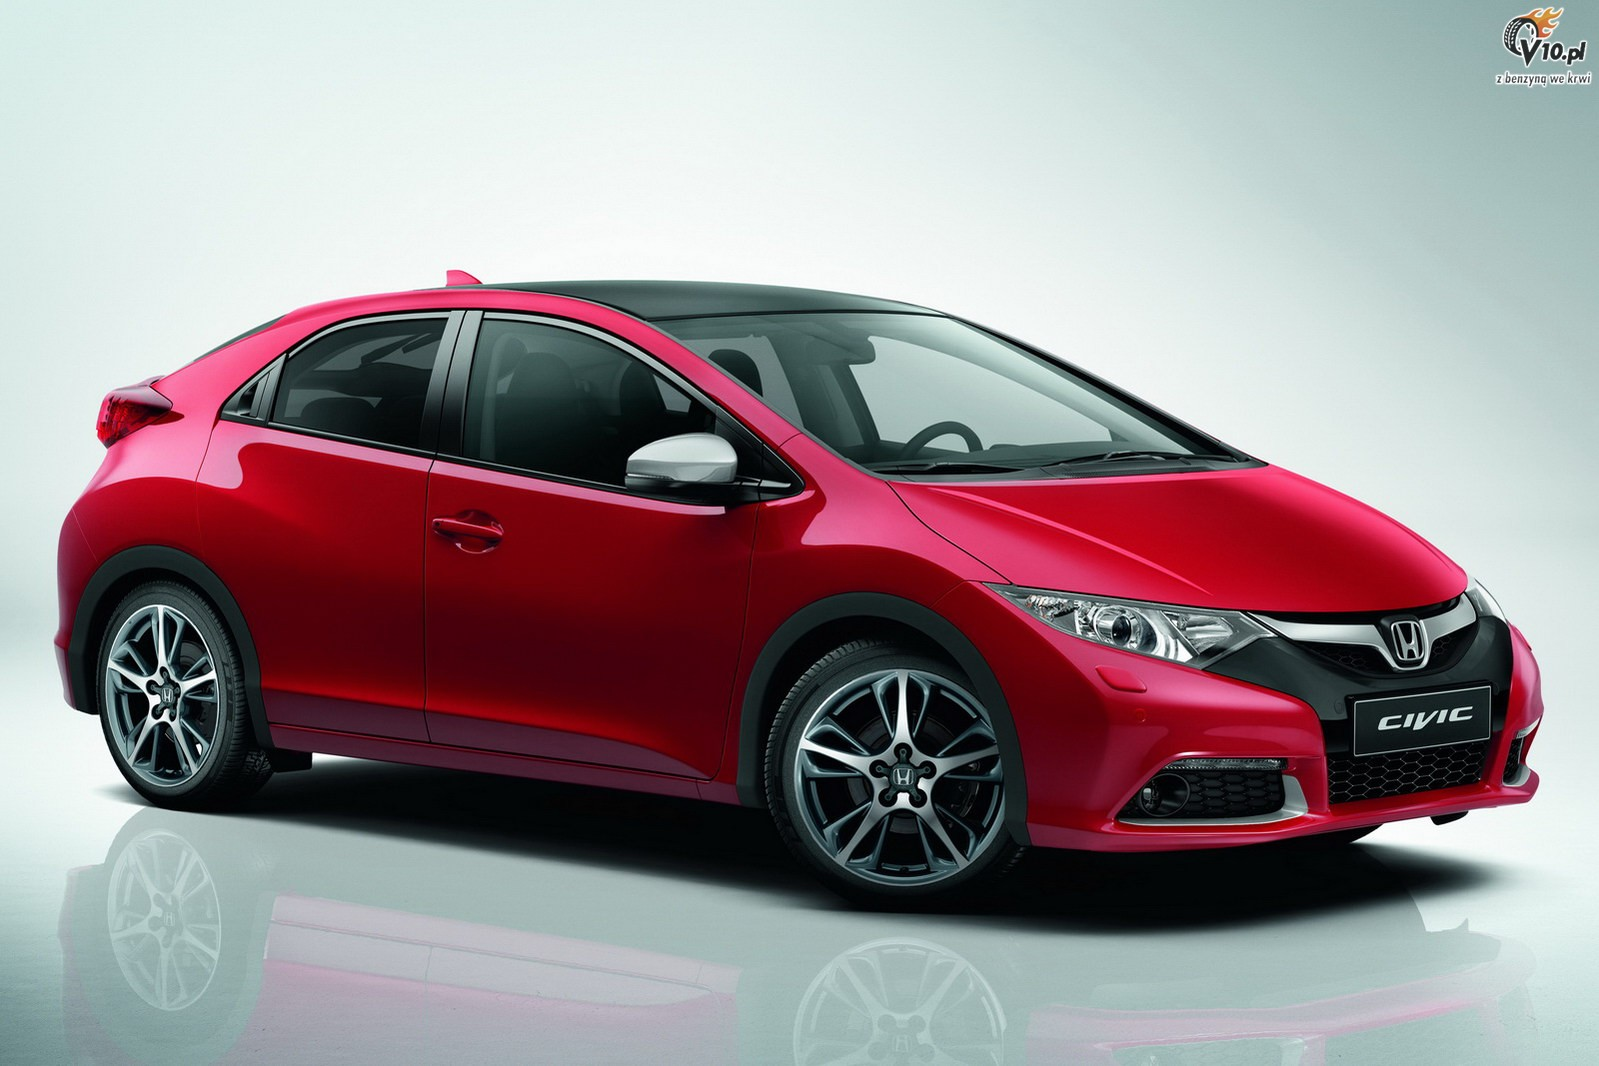 Honda civic technical specifications and fuel economy for Honda civic mileage